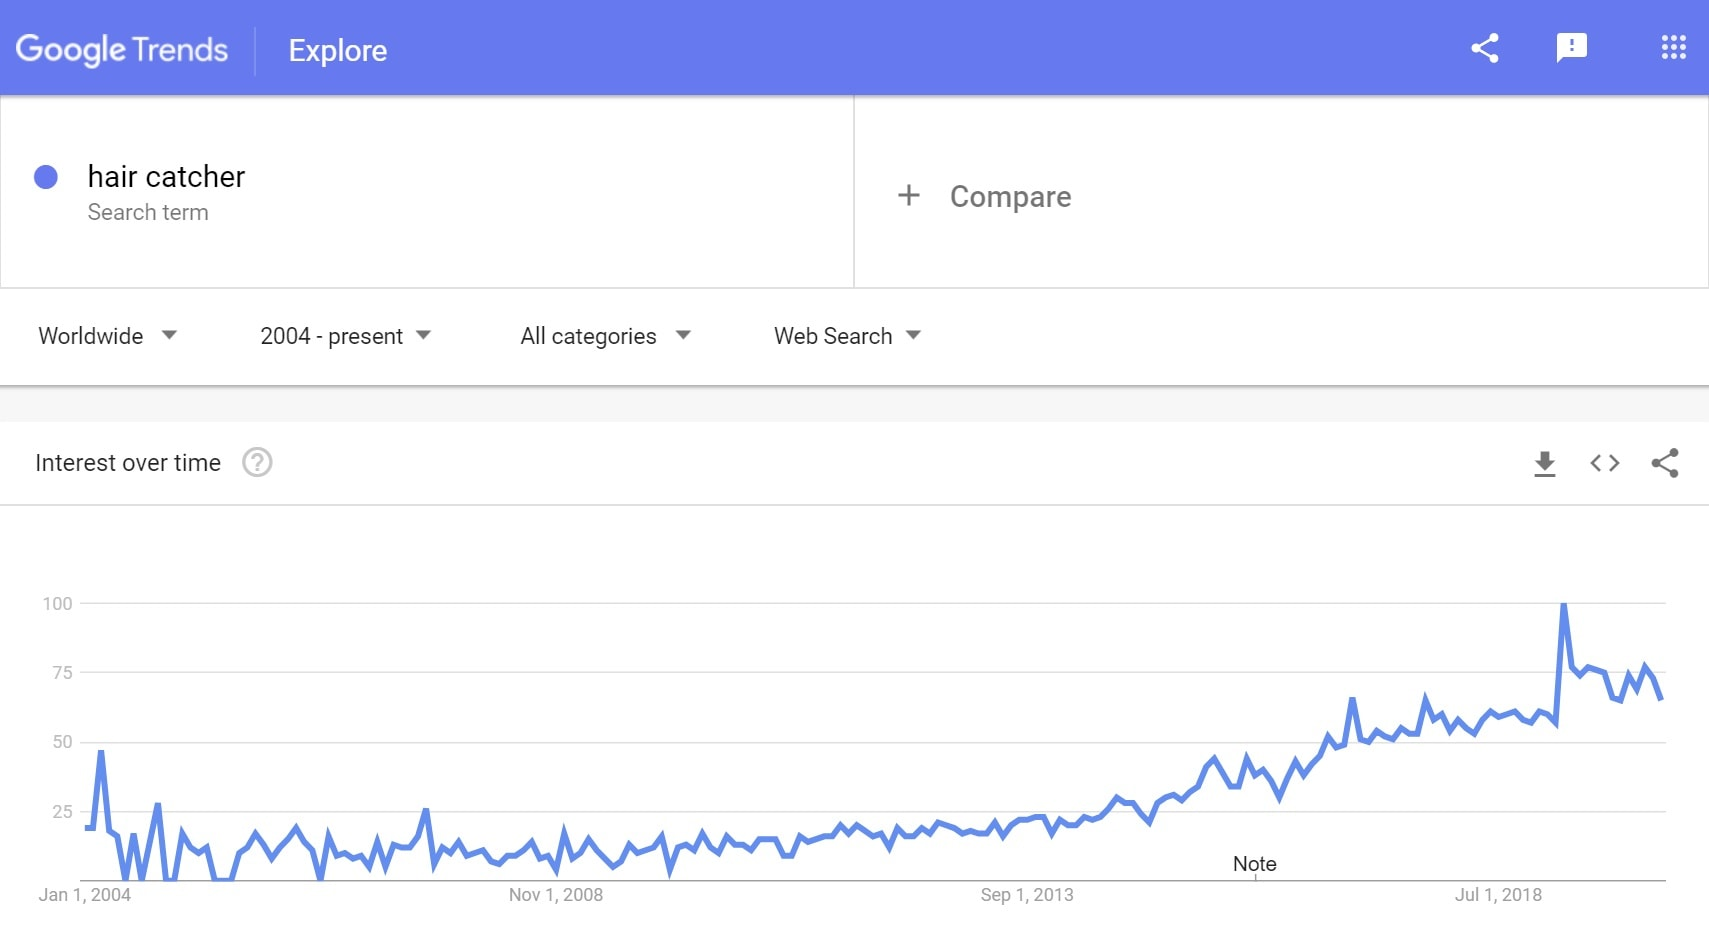 Google trends: Hair catcher to sell